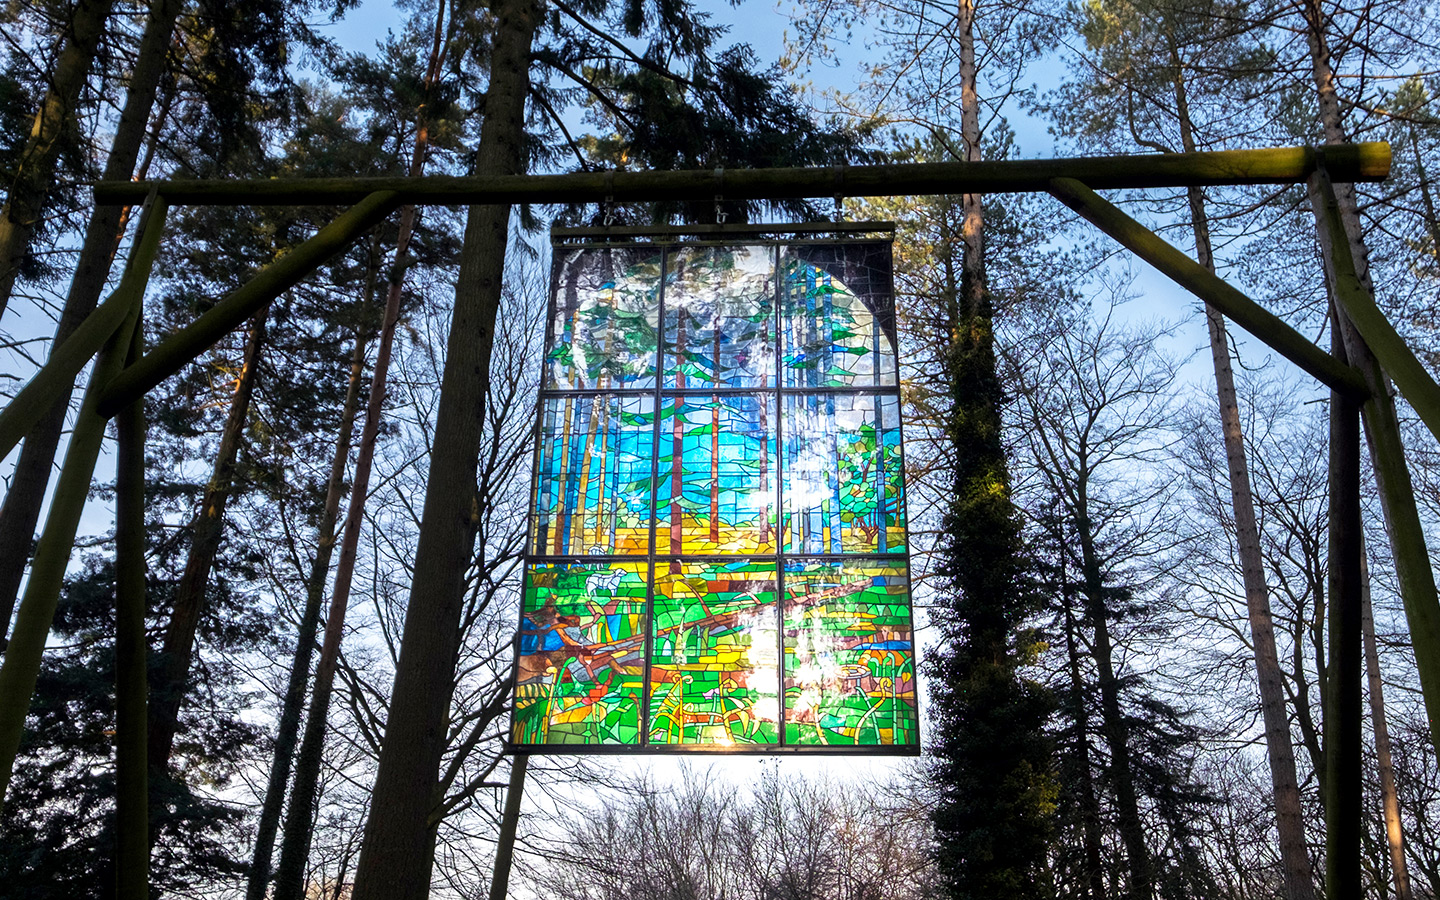 Stained glass window at the Forest of Dean Sculpture Trail